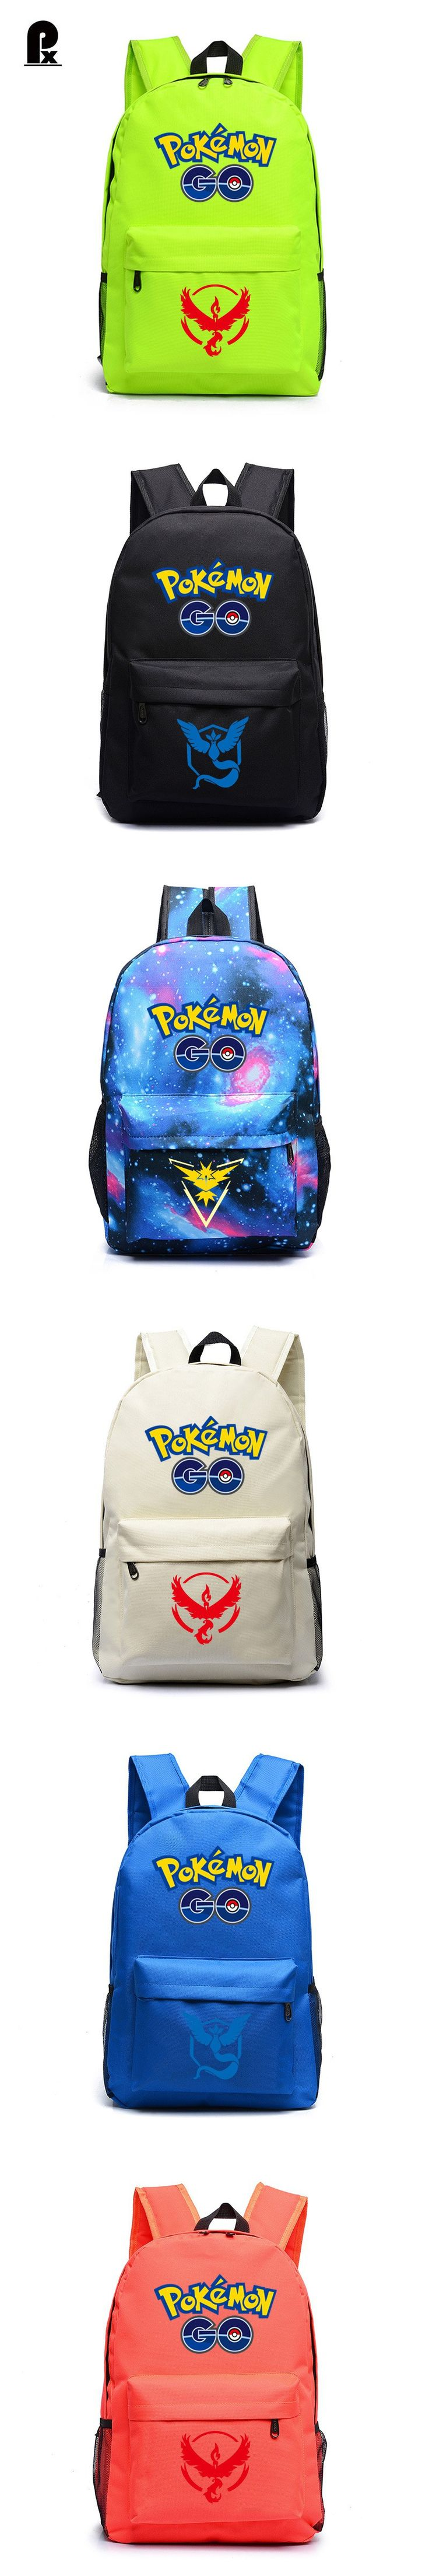 New Hot Sale shoulder bags Anime Pokemon Backpack Boys Girls School Bags Pikachu Printing kids bags for Teenagers Mochila canta $33.31